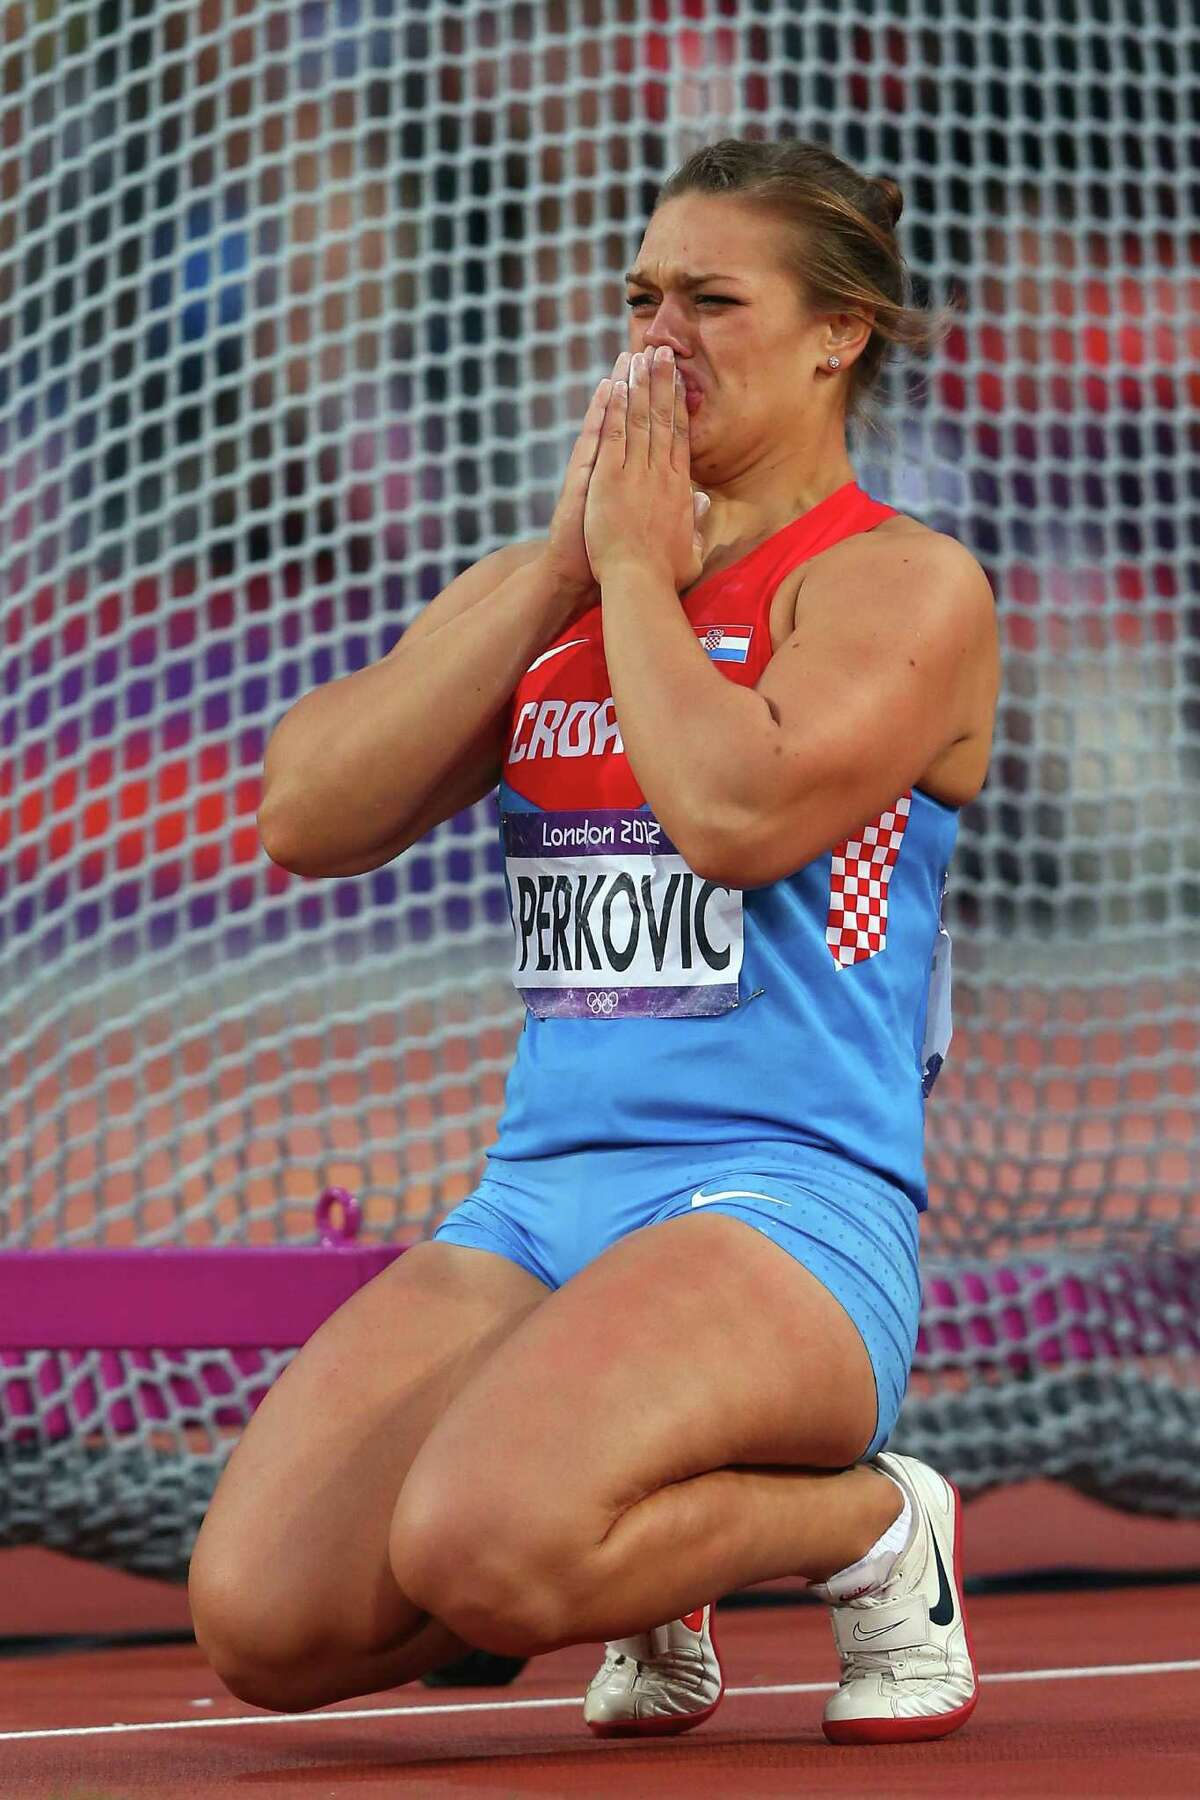 Sandra Perkovic of Croatia reacts as she wins gold in the Women's Discus Throw Final at Olympic Stadium.